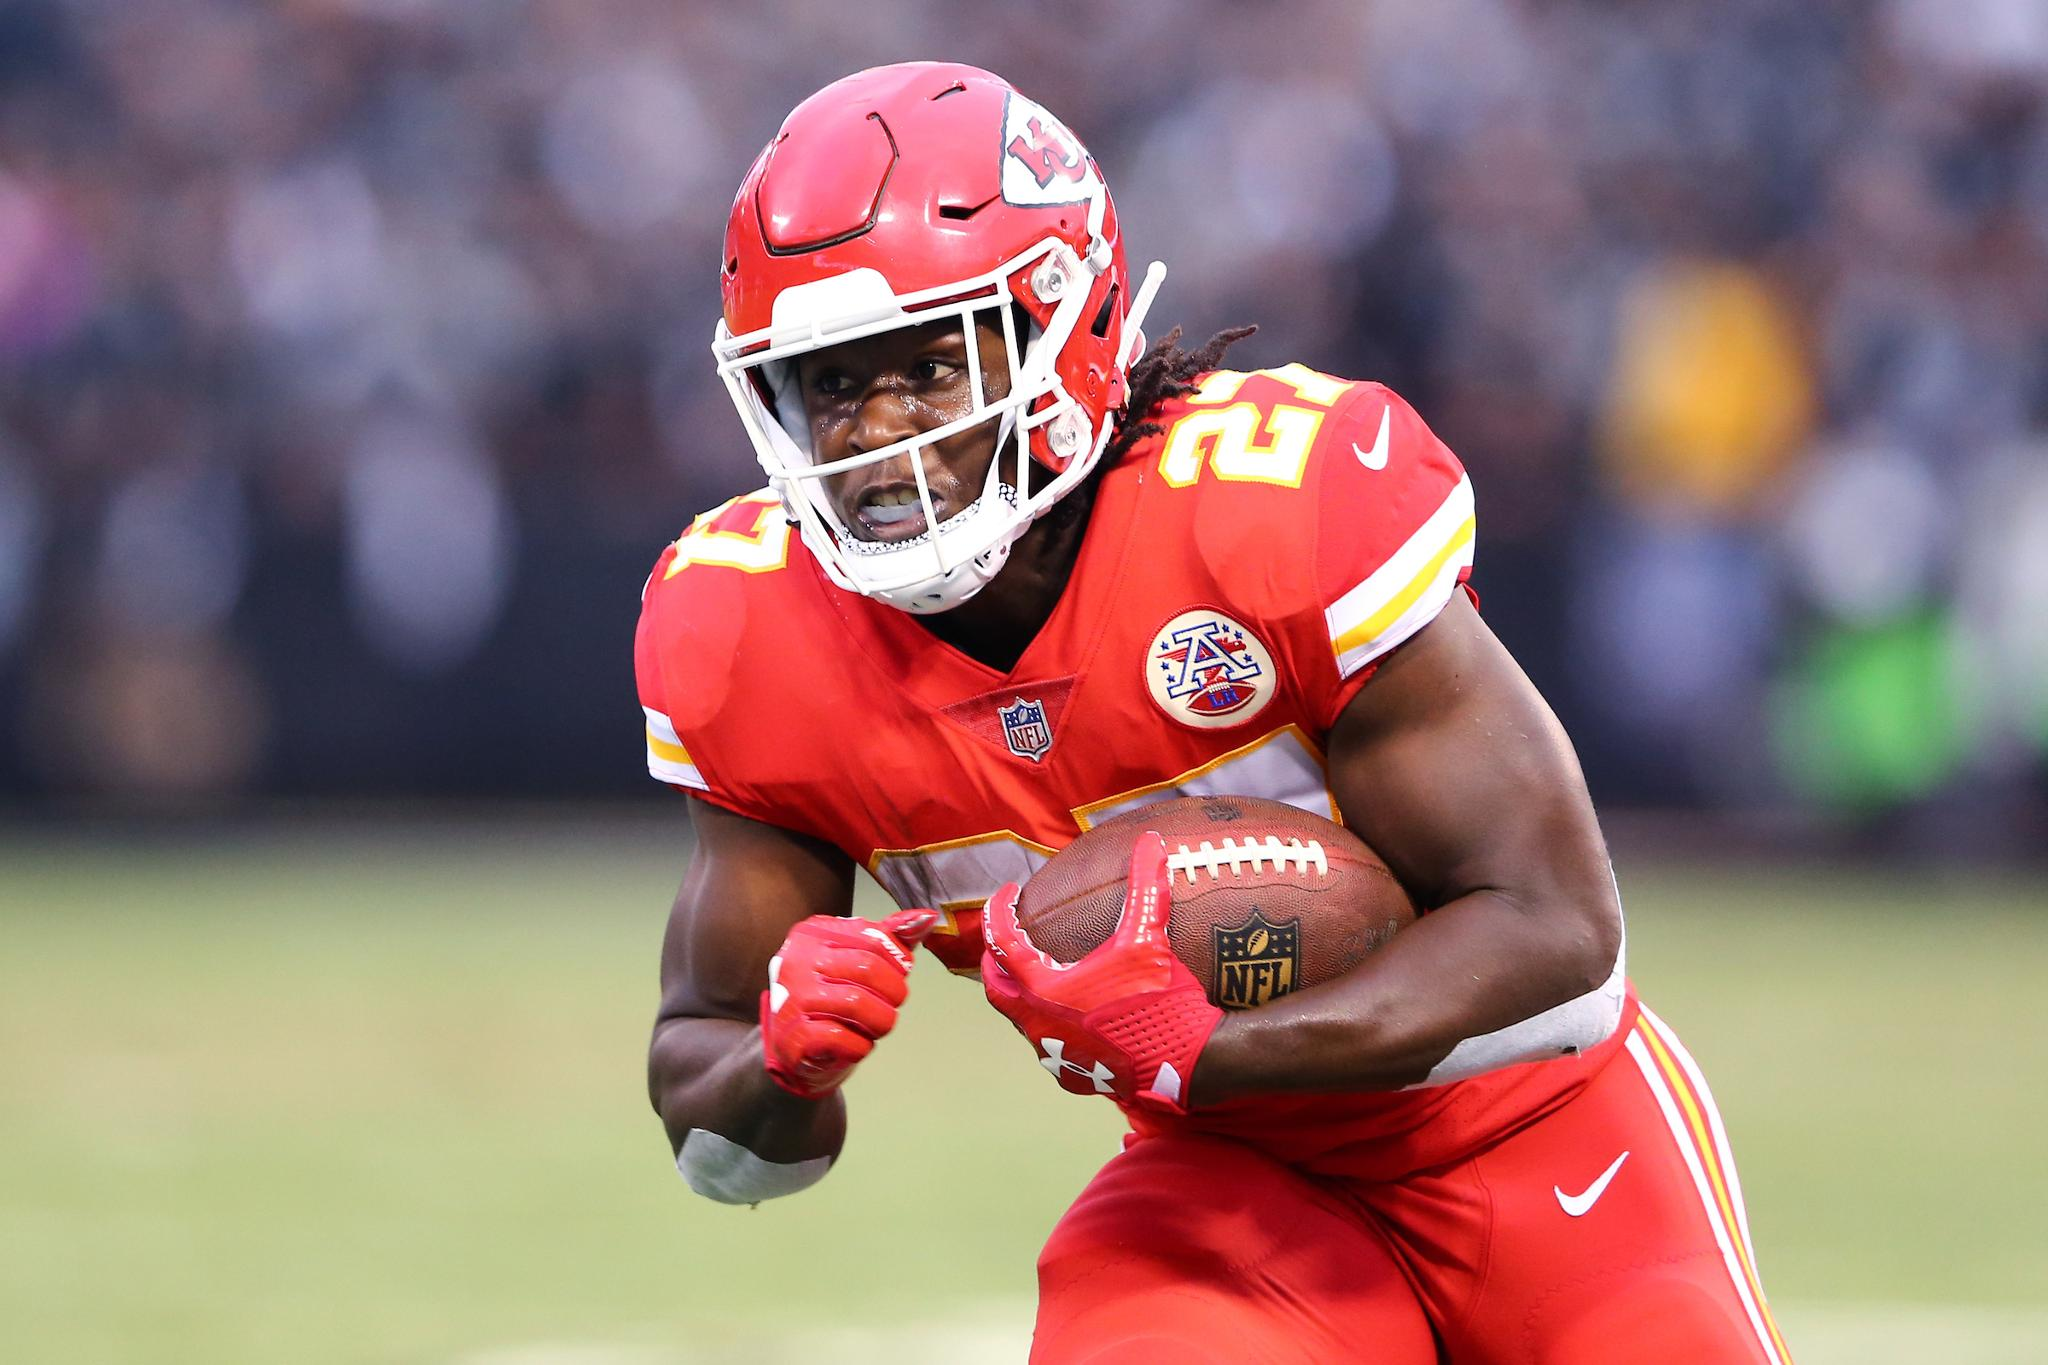 Could we add another running back?